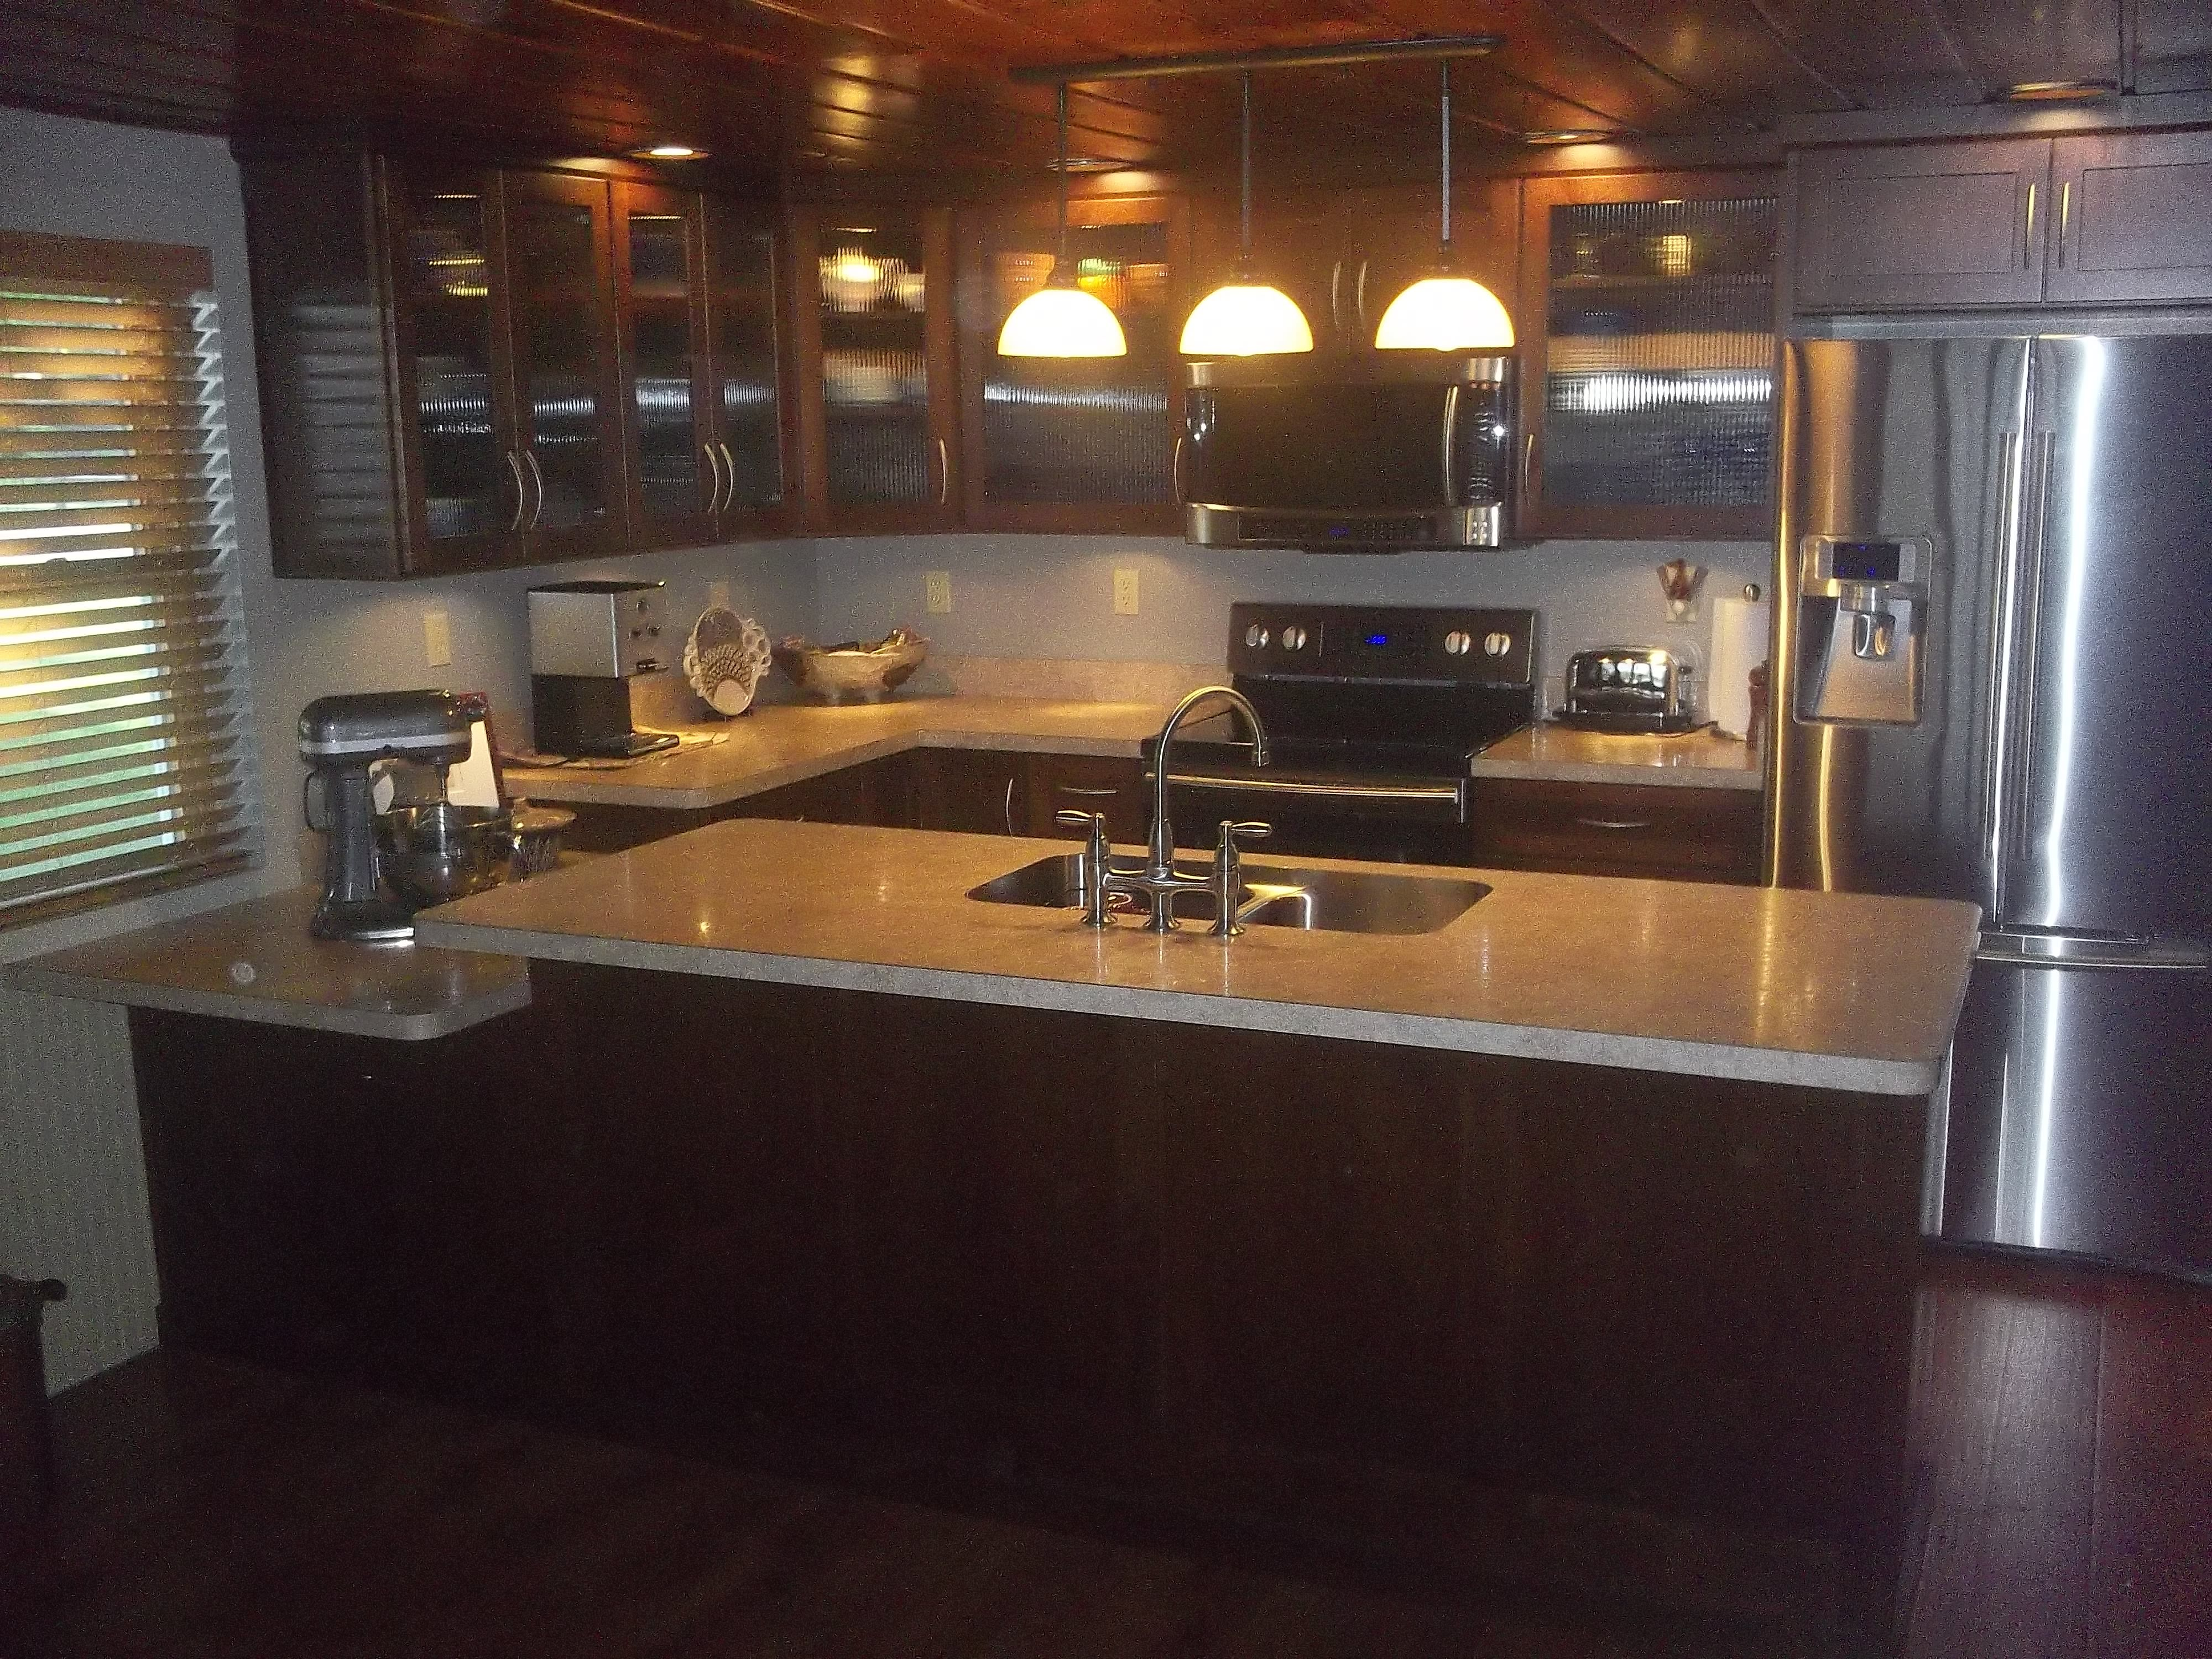 Countertops Definition Dark Maple Cabinetry With Reeded Glass And A Stainless